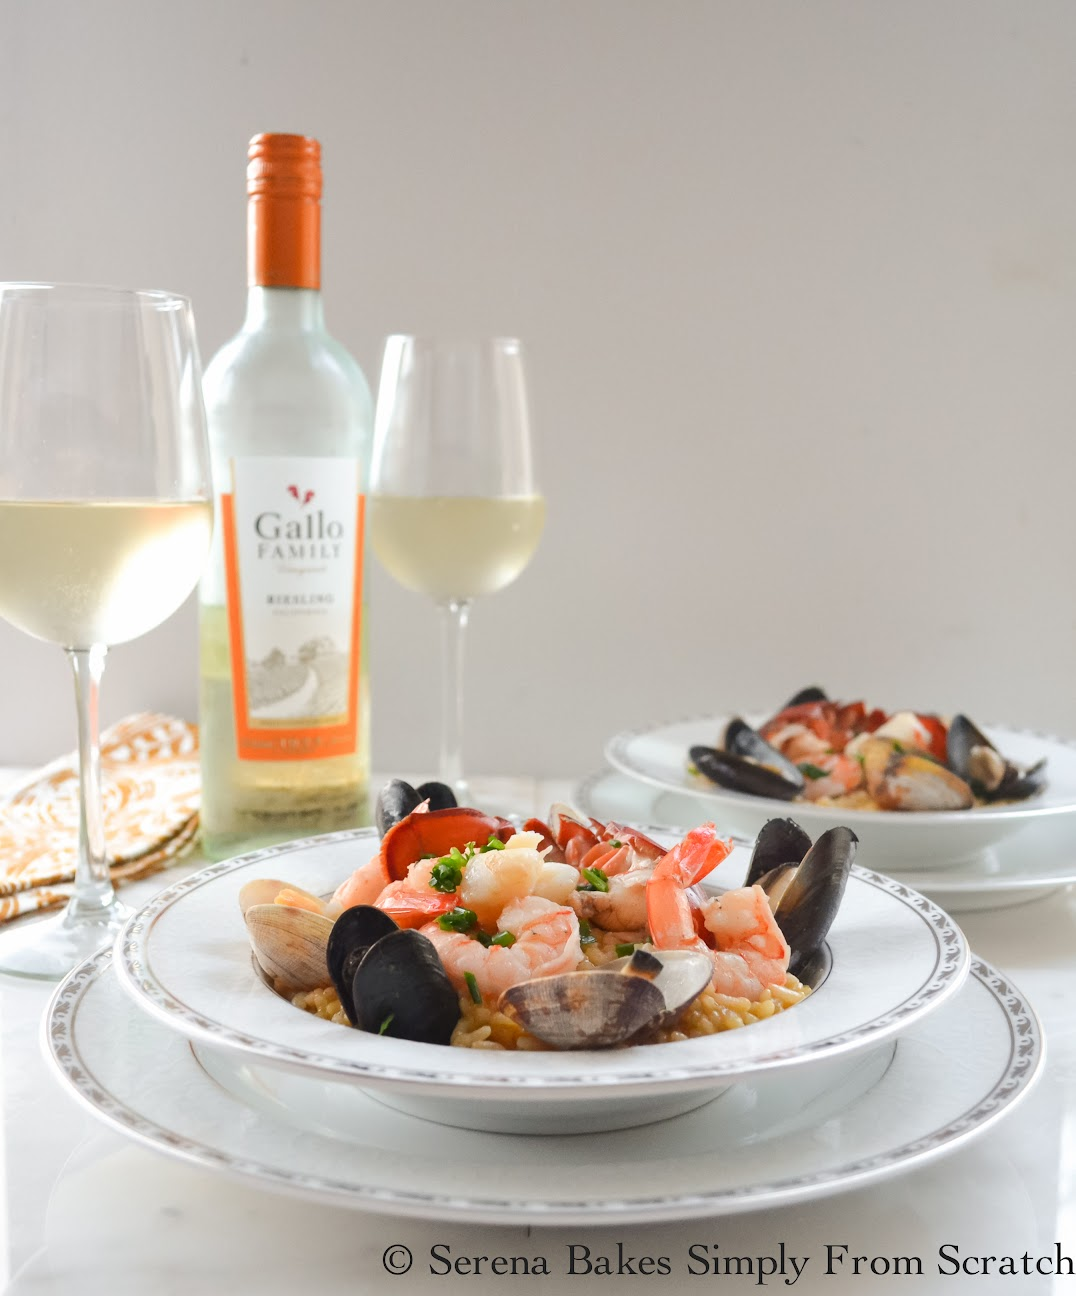 Seafood Risottos pairs beautifully with a glass of Gallo Family Vineyards Riesling.